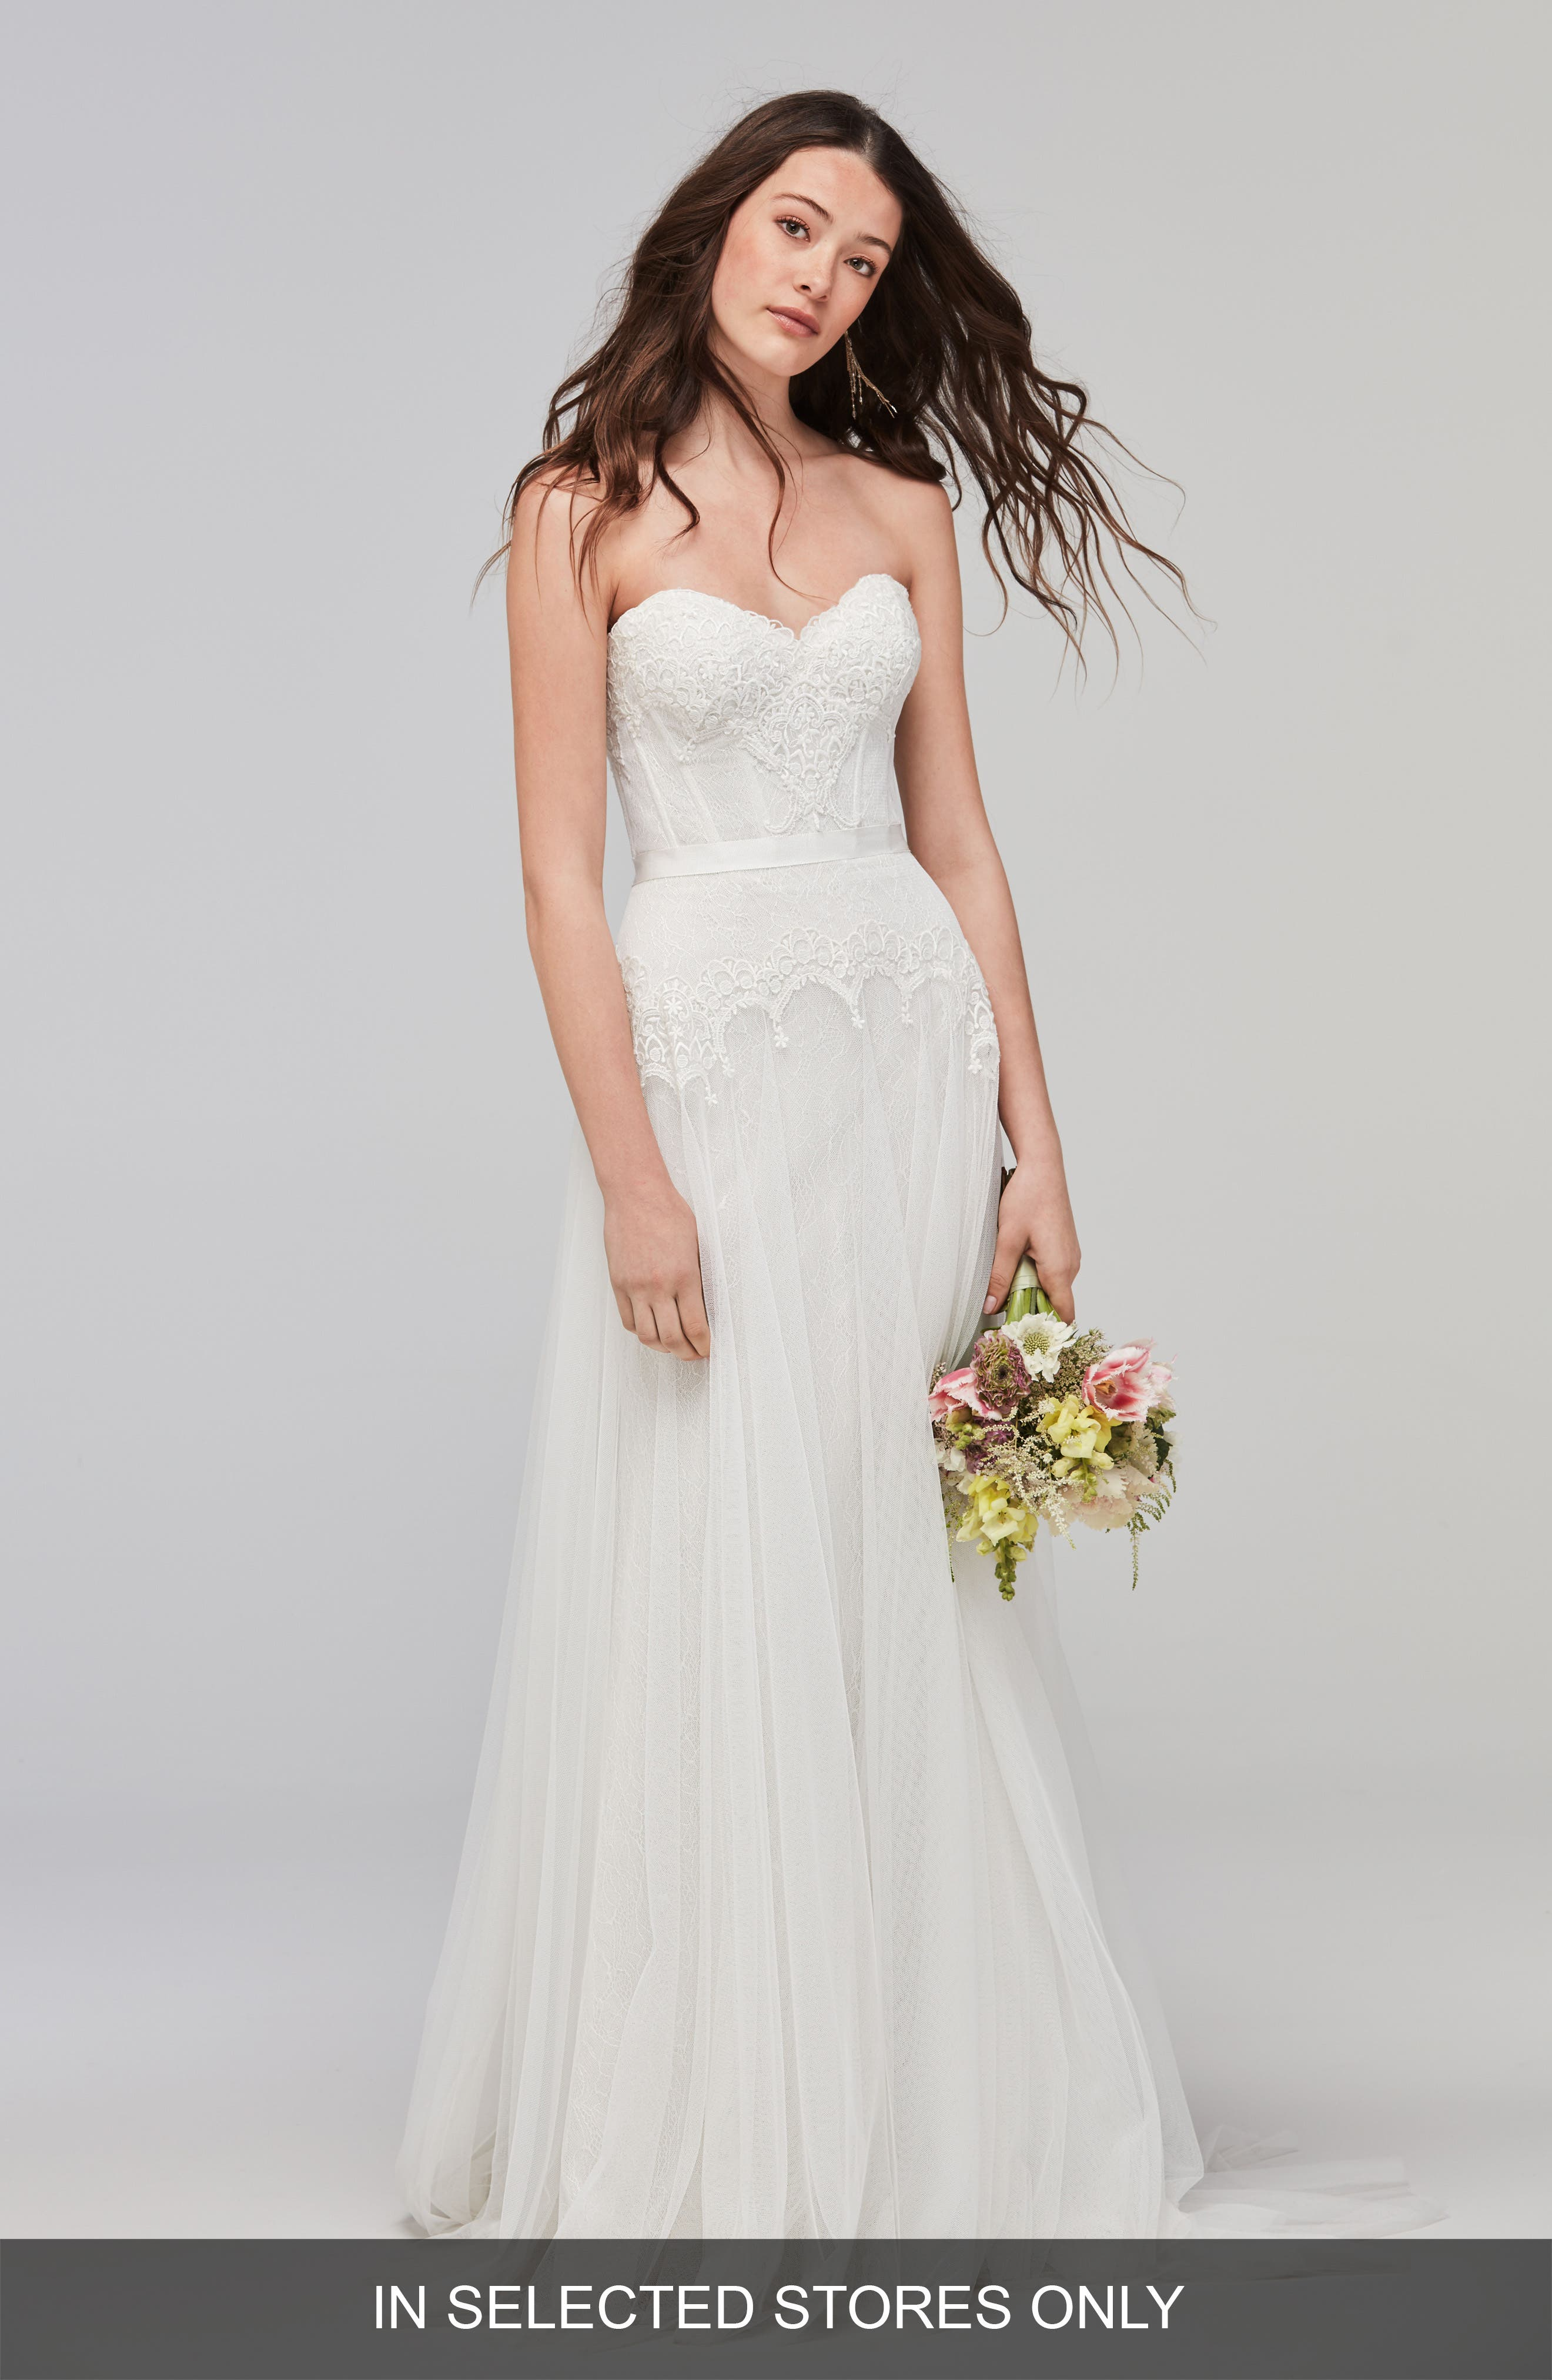 Lupine Strapless Chantilly Lace & Net Gown,                             Main thumbnail 1, color,                             IVORY/OYSTER